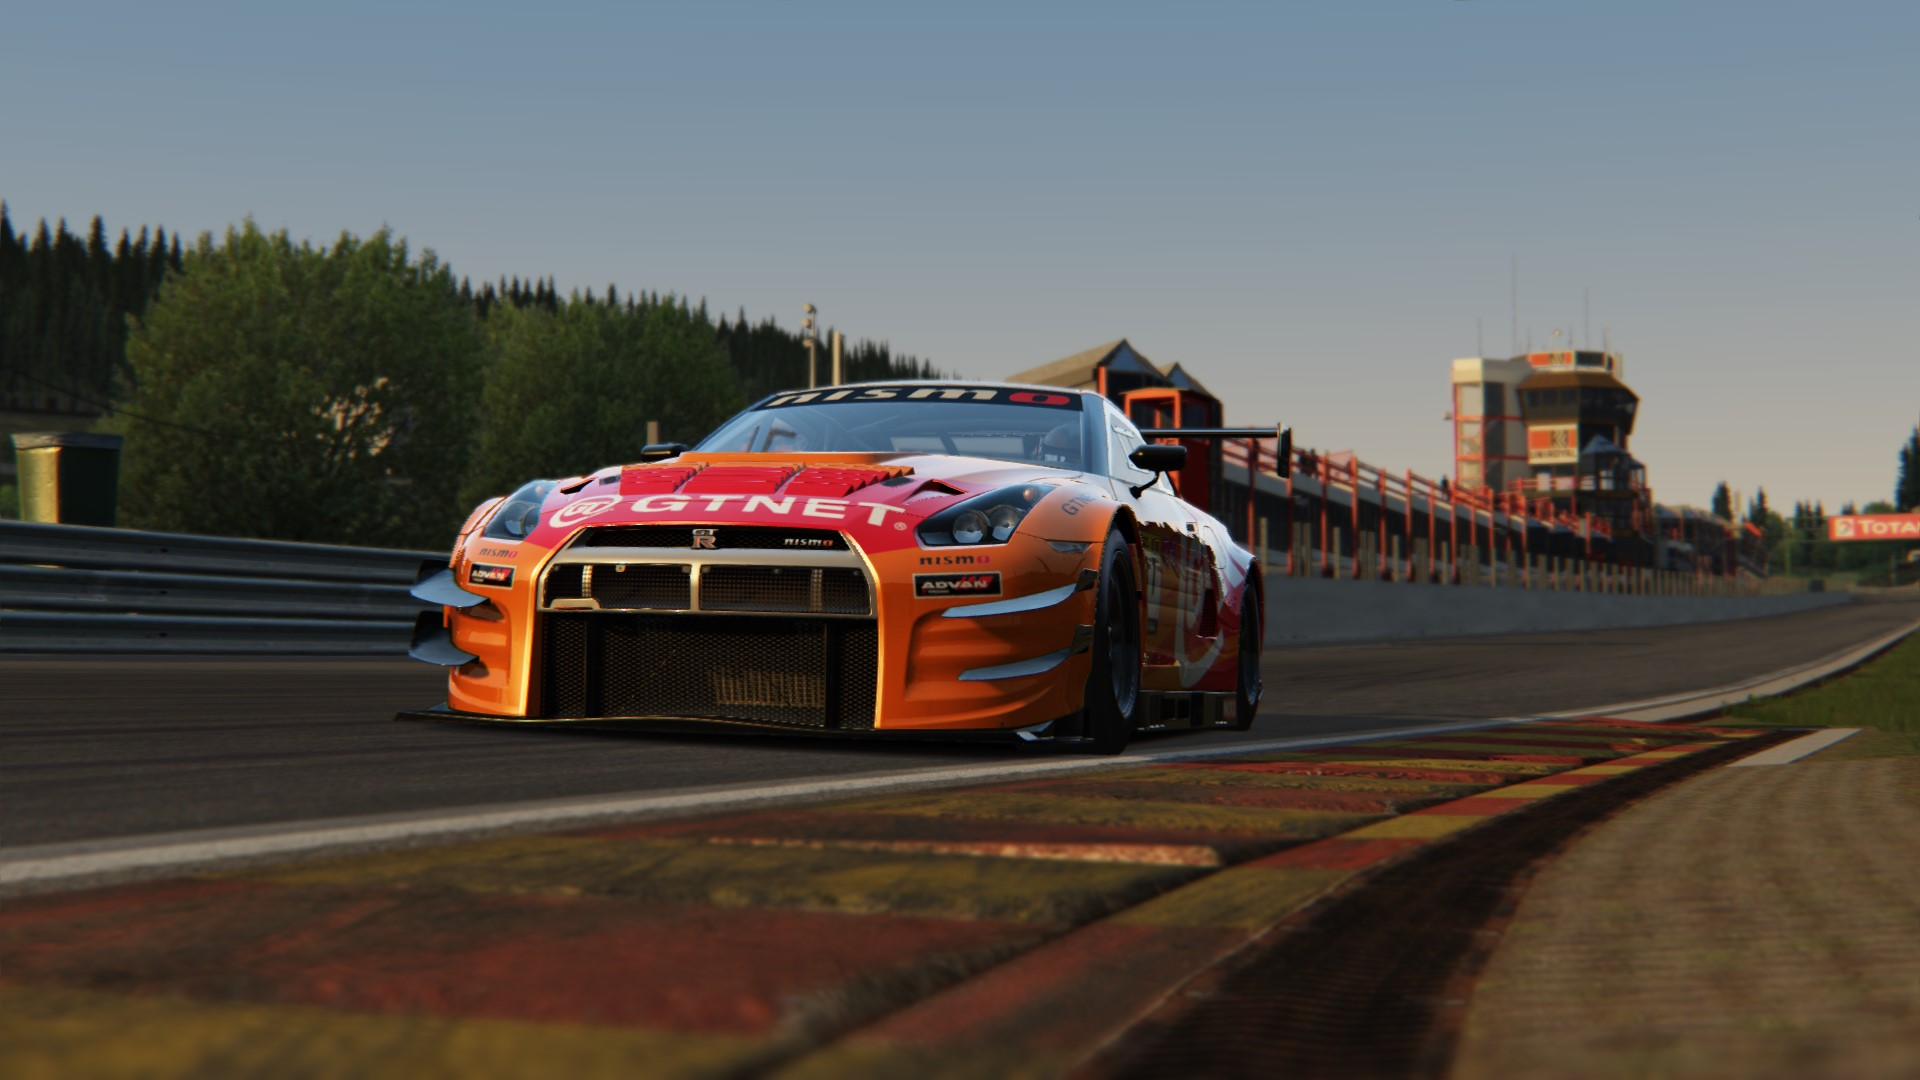 Screenshot_ks_nissan_gtr_gt3_spa_25-2-116-16-17-20.jpg